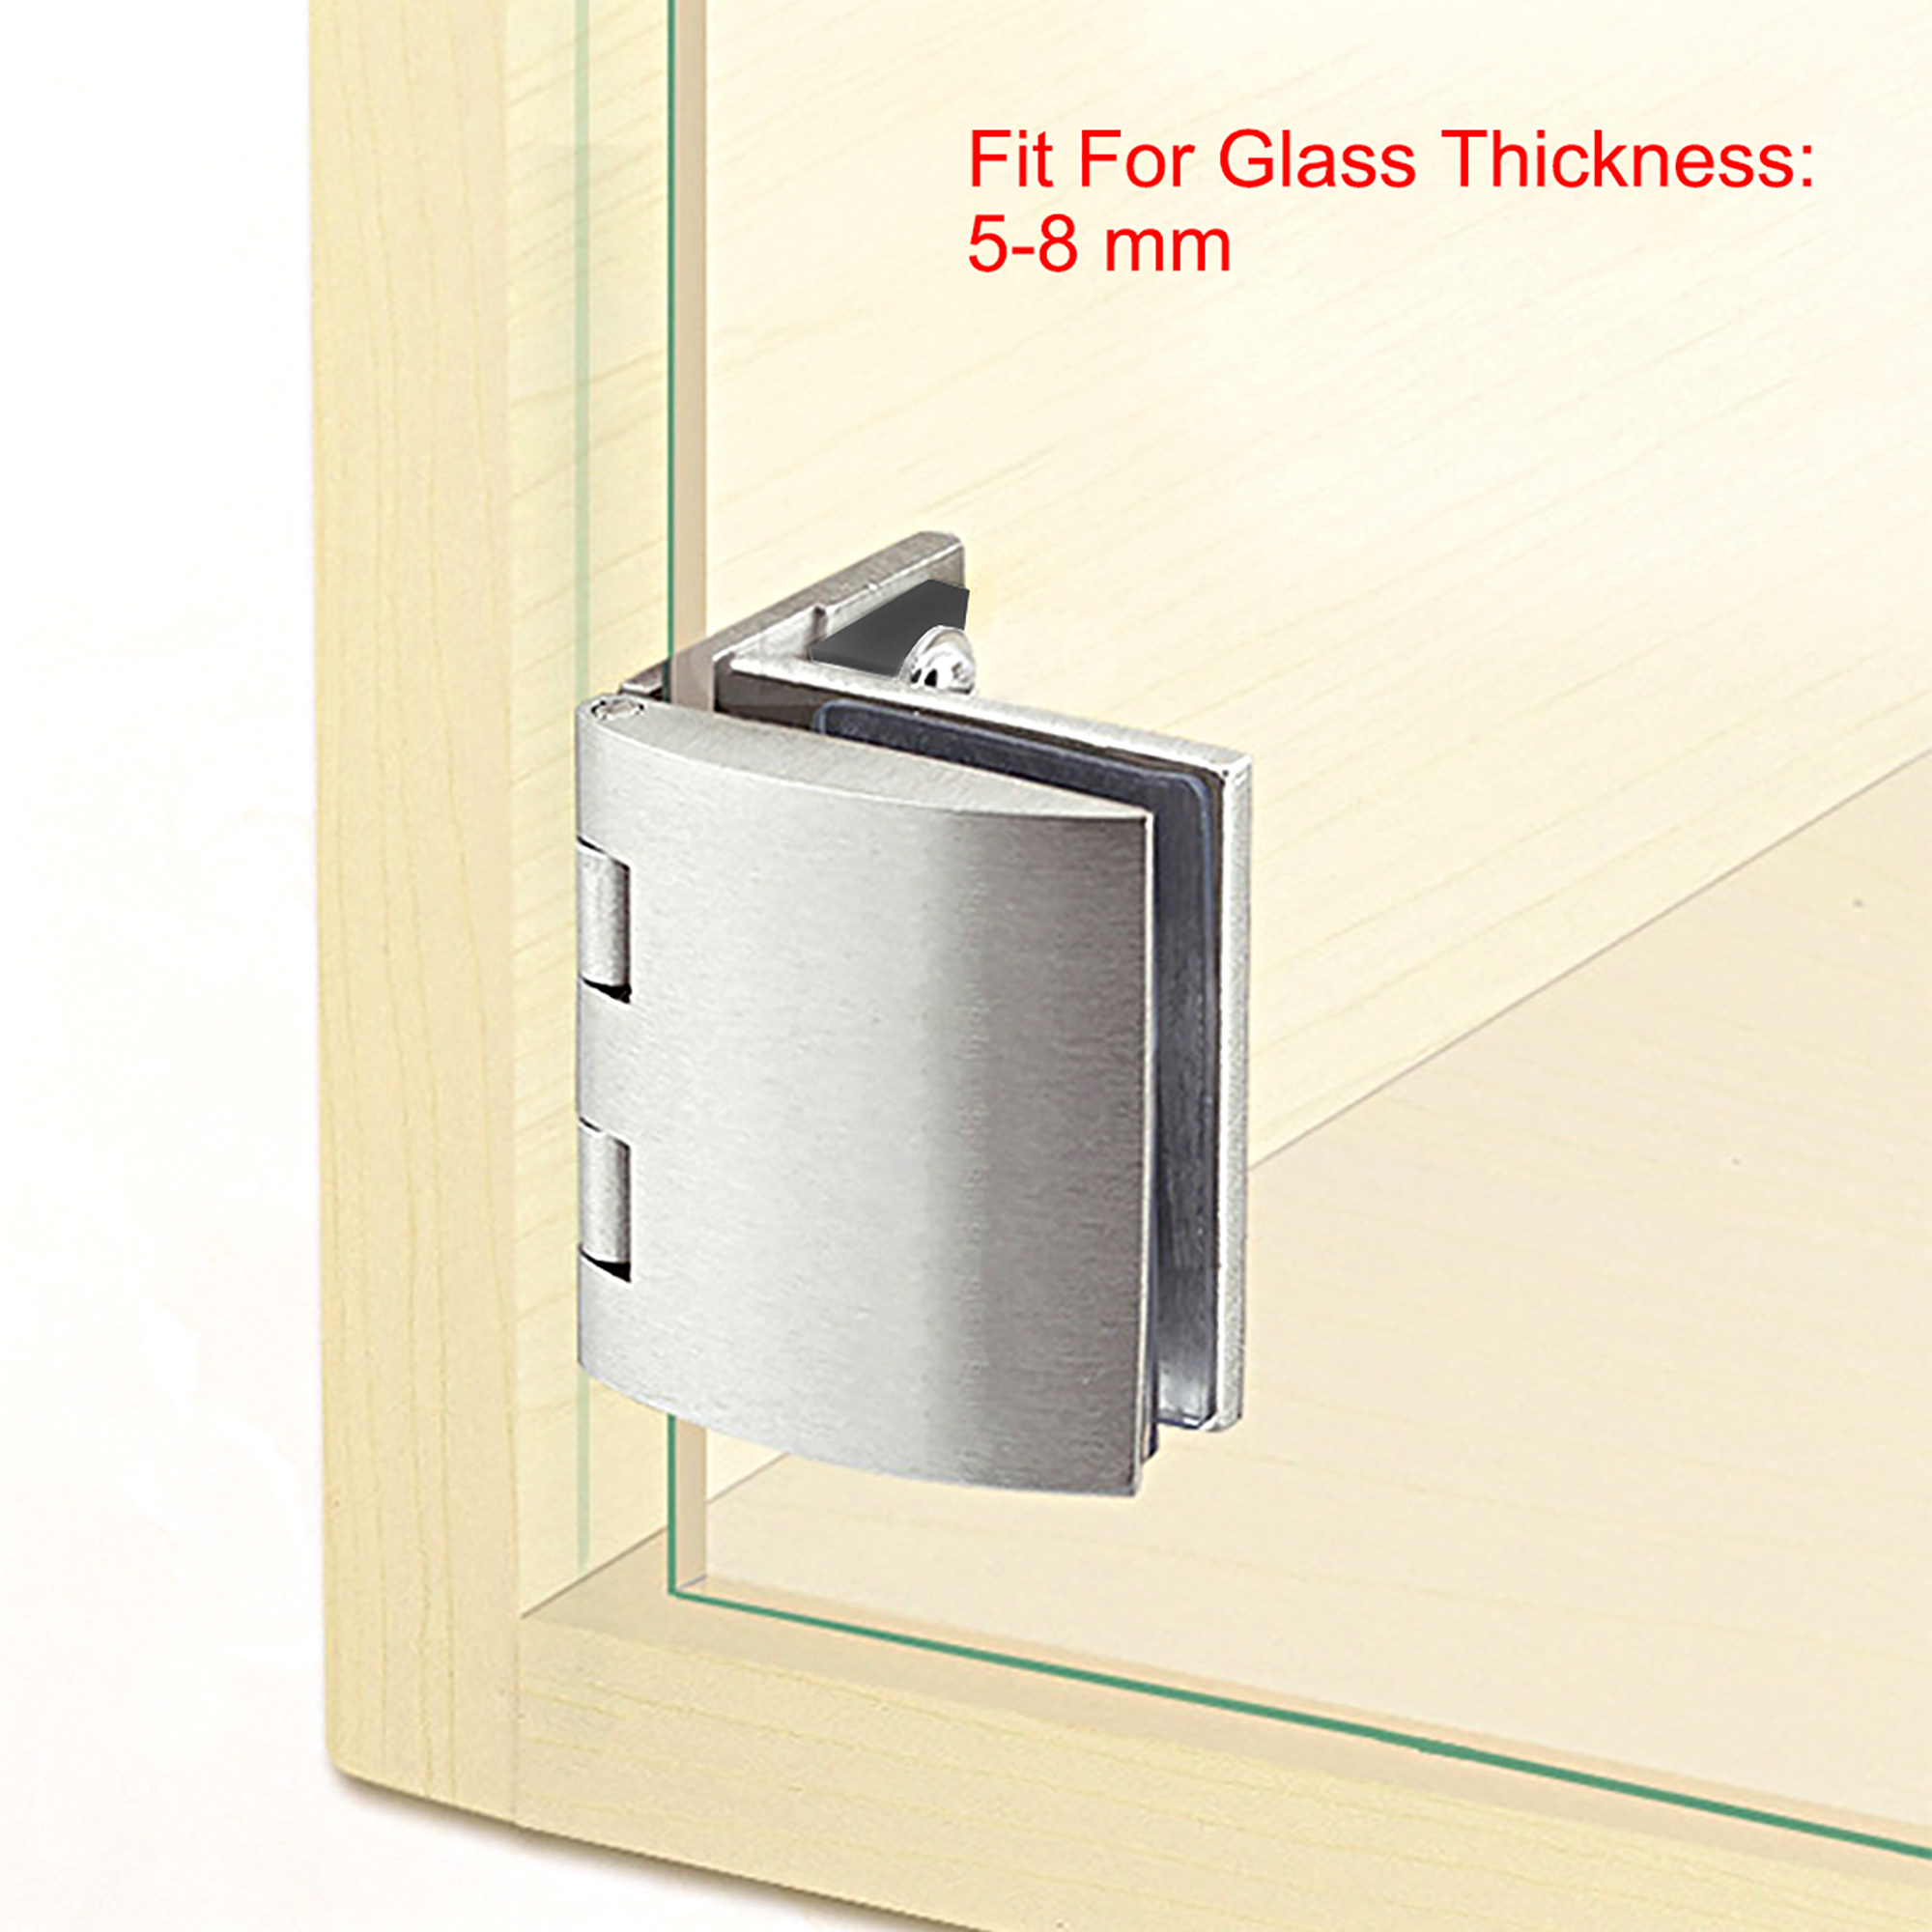 Uxcell Glass Hinge Showcase Door Hinge Glass Clamp for 5-8mm Thickness 2Pcs - image 3 of 5